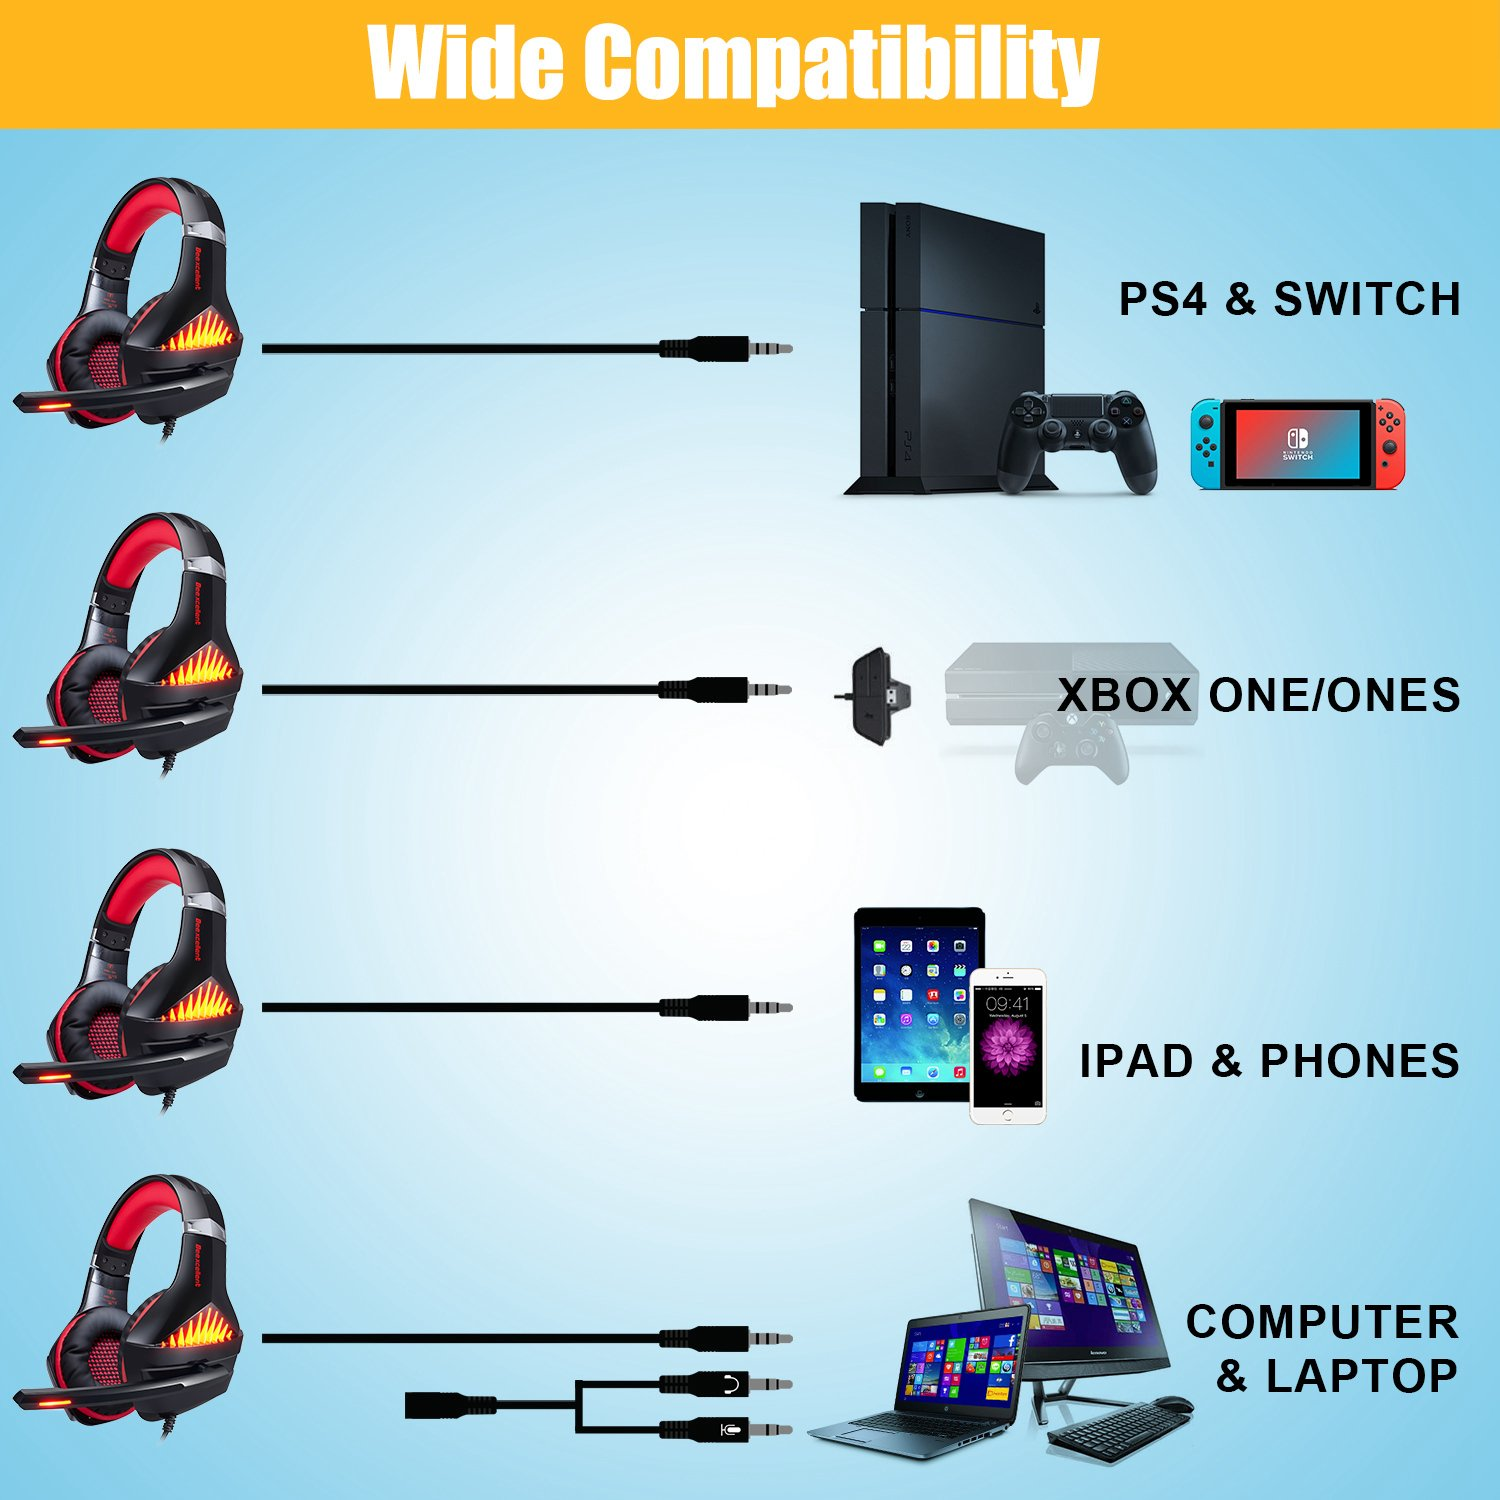 BlueFire Upgraded Professional PS4 Gaming Headset 3.5mm Wired Bass Stereo Noise Isolation Gaming Headphone with Mic and LED Lights for Playstation 4, Xbox one, Laptop, PC(Red) by BlueFire (Image #5)